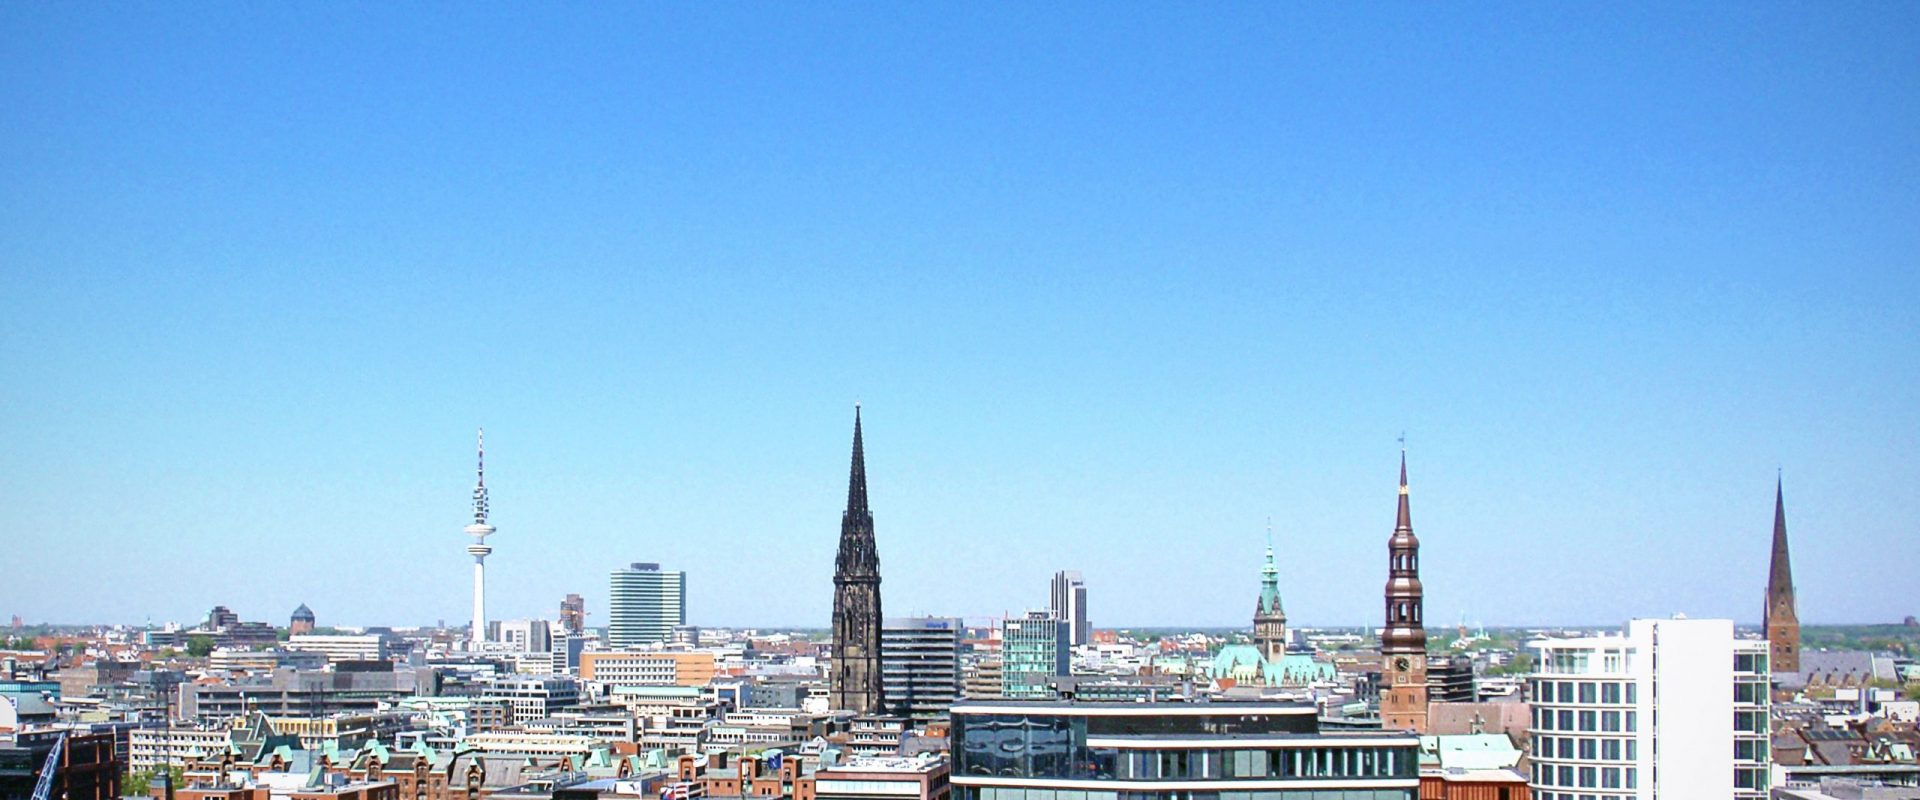 skyline-hamburg-city-buildings-39152